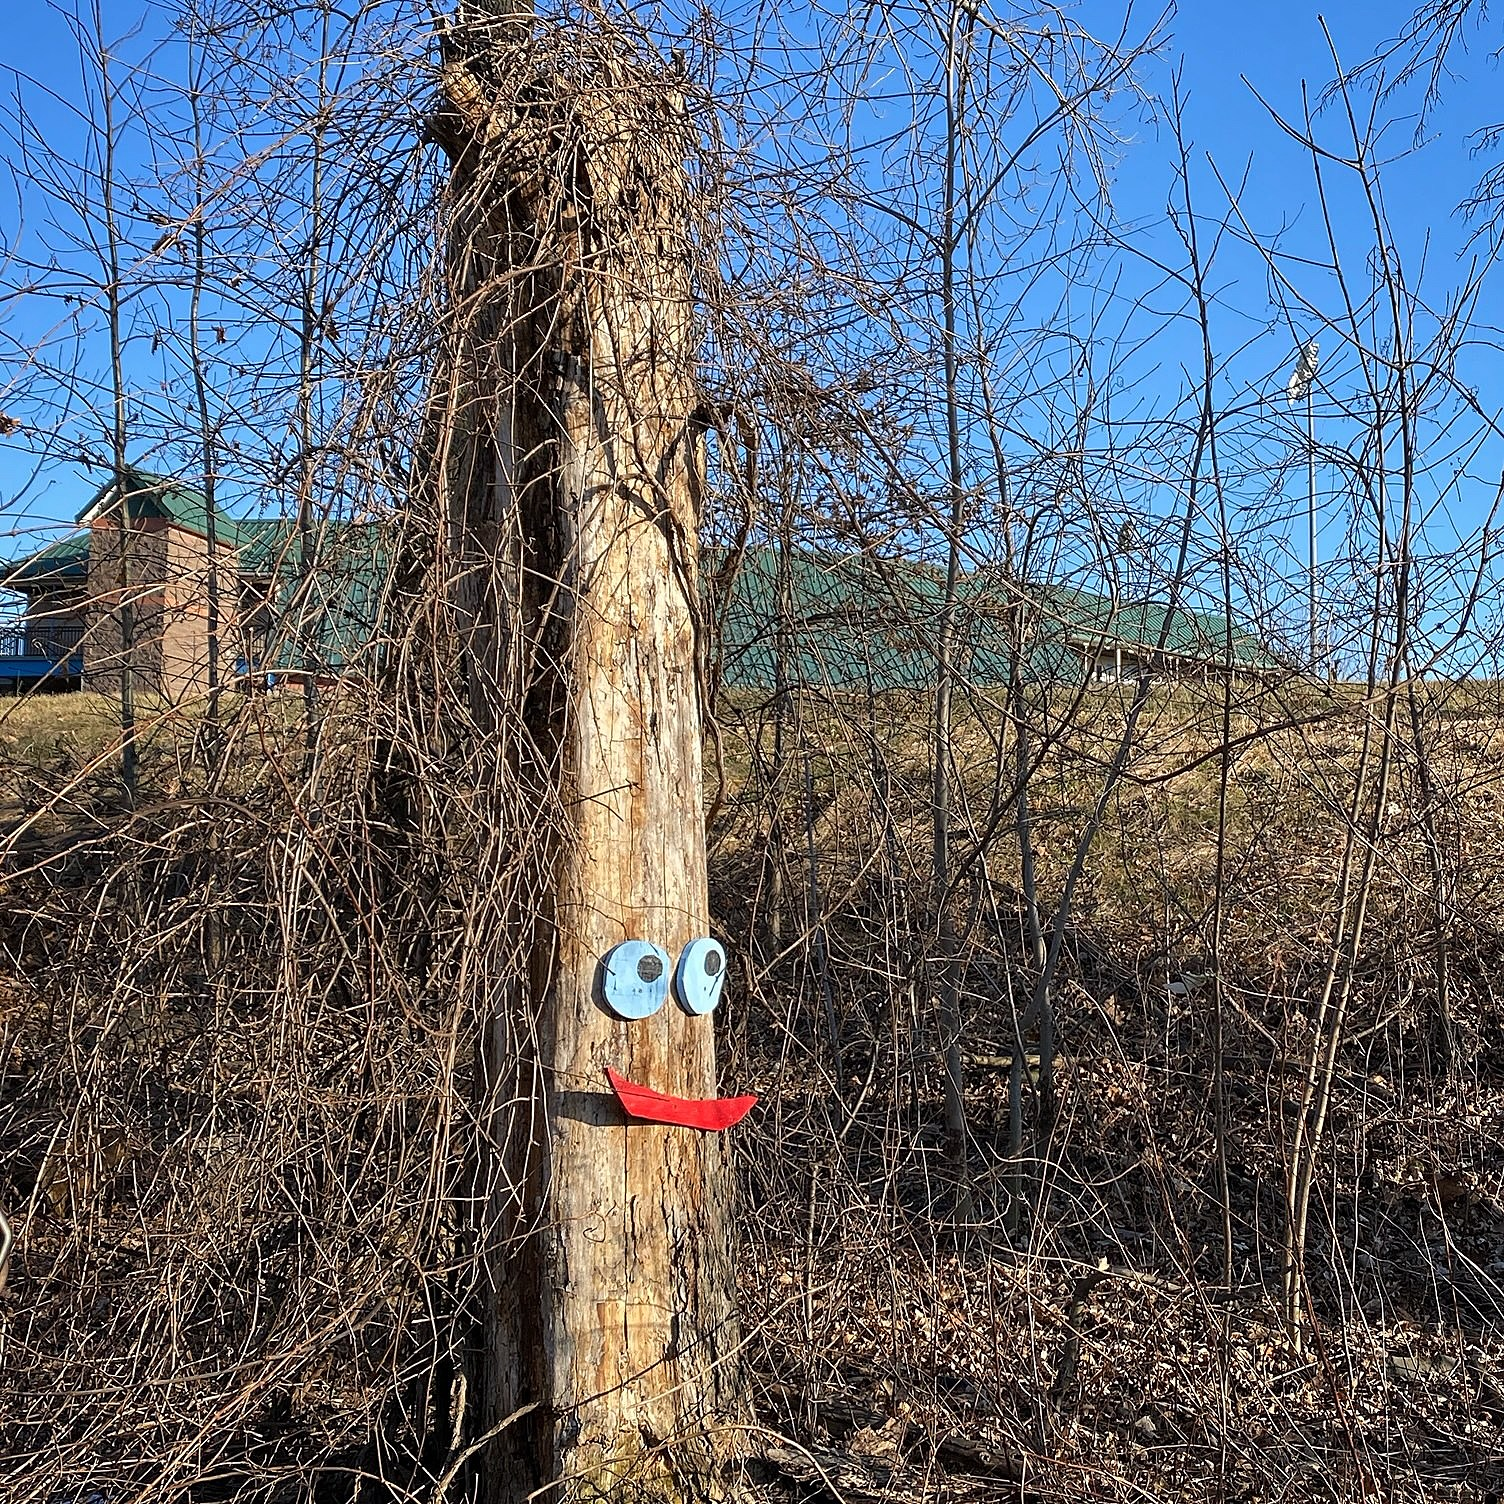 Creepy Tree Faces Arrive In Dutchess County